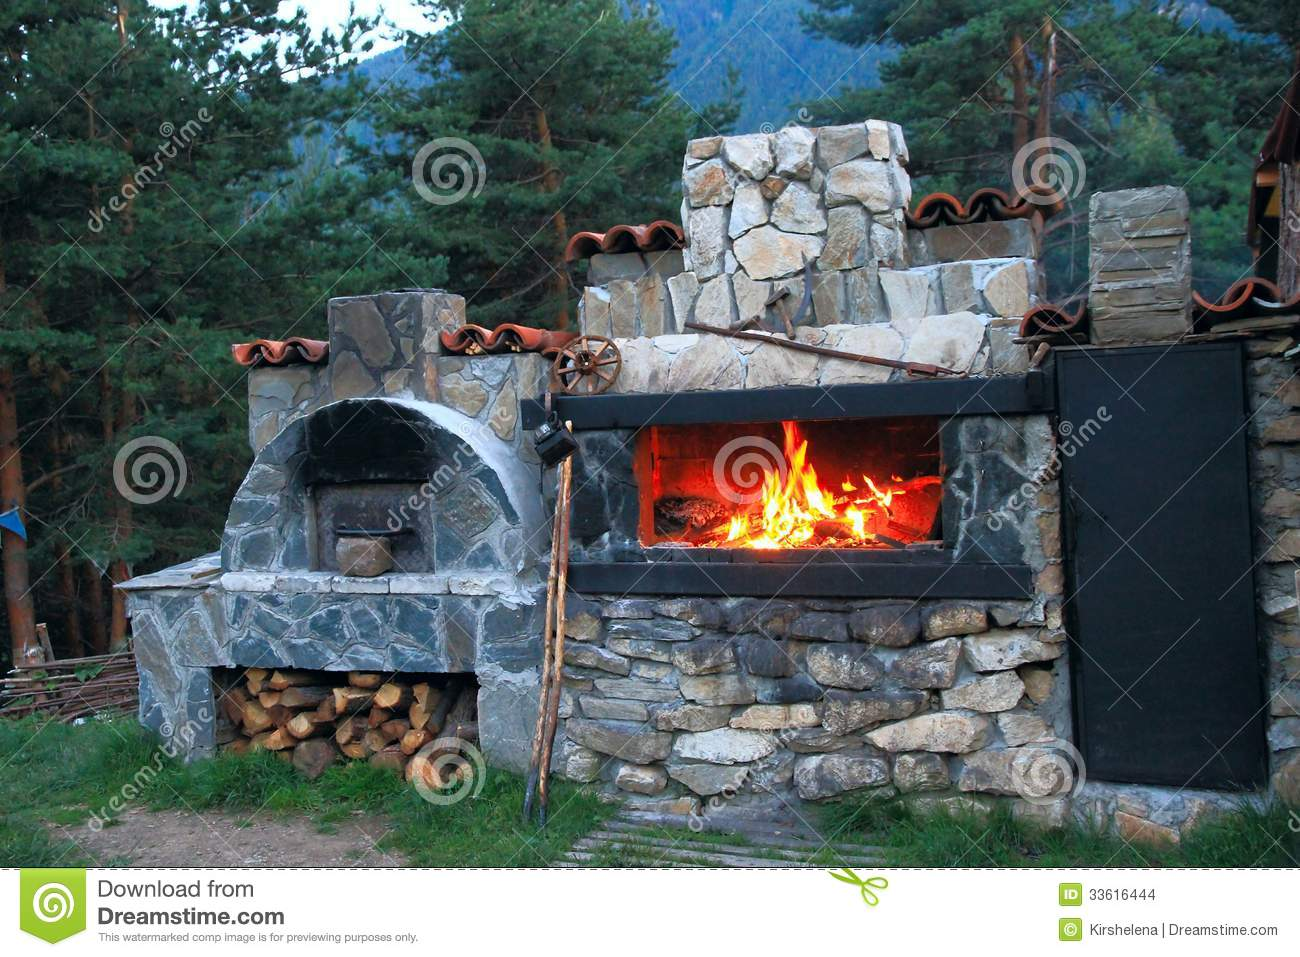 bbq oven made of stone in the courtyard of the house stock images image 33616444. Black Bedroom Furniture Sets. Home Design Ideas